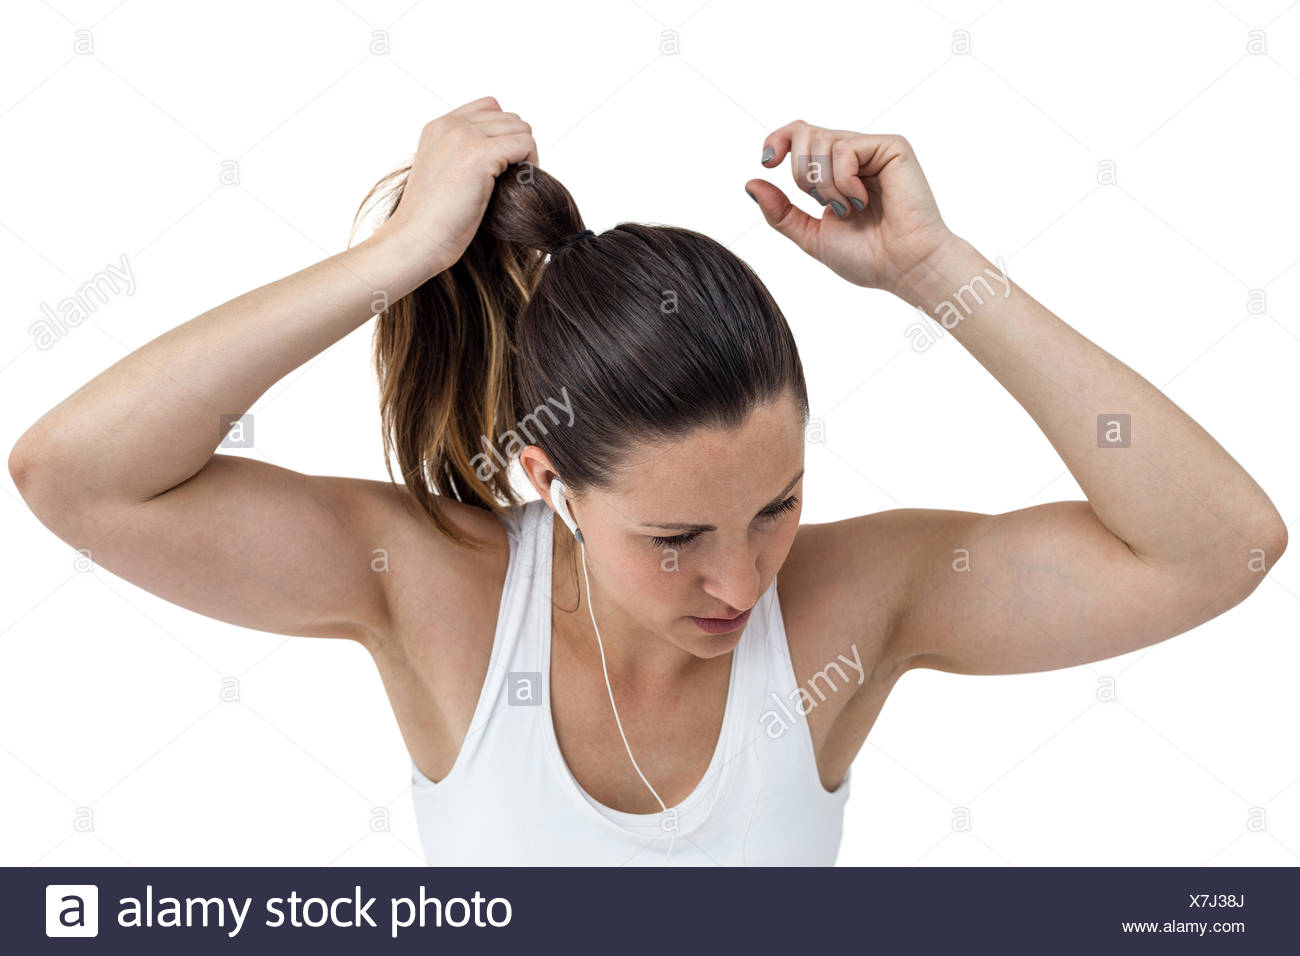 Athlete woman tying her hair and listening to music - Stock Image